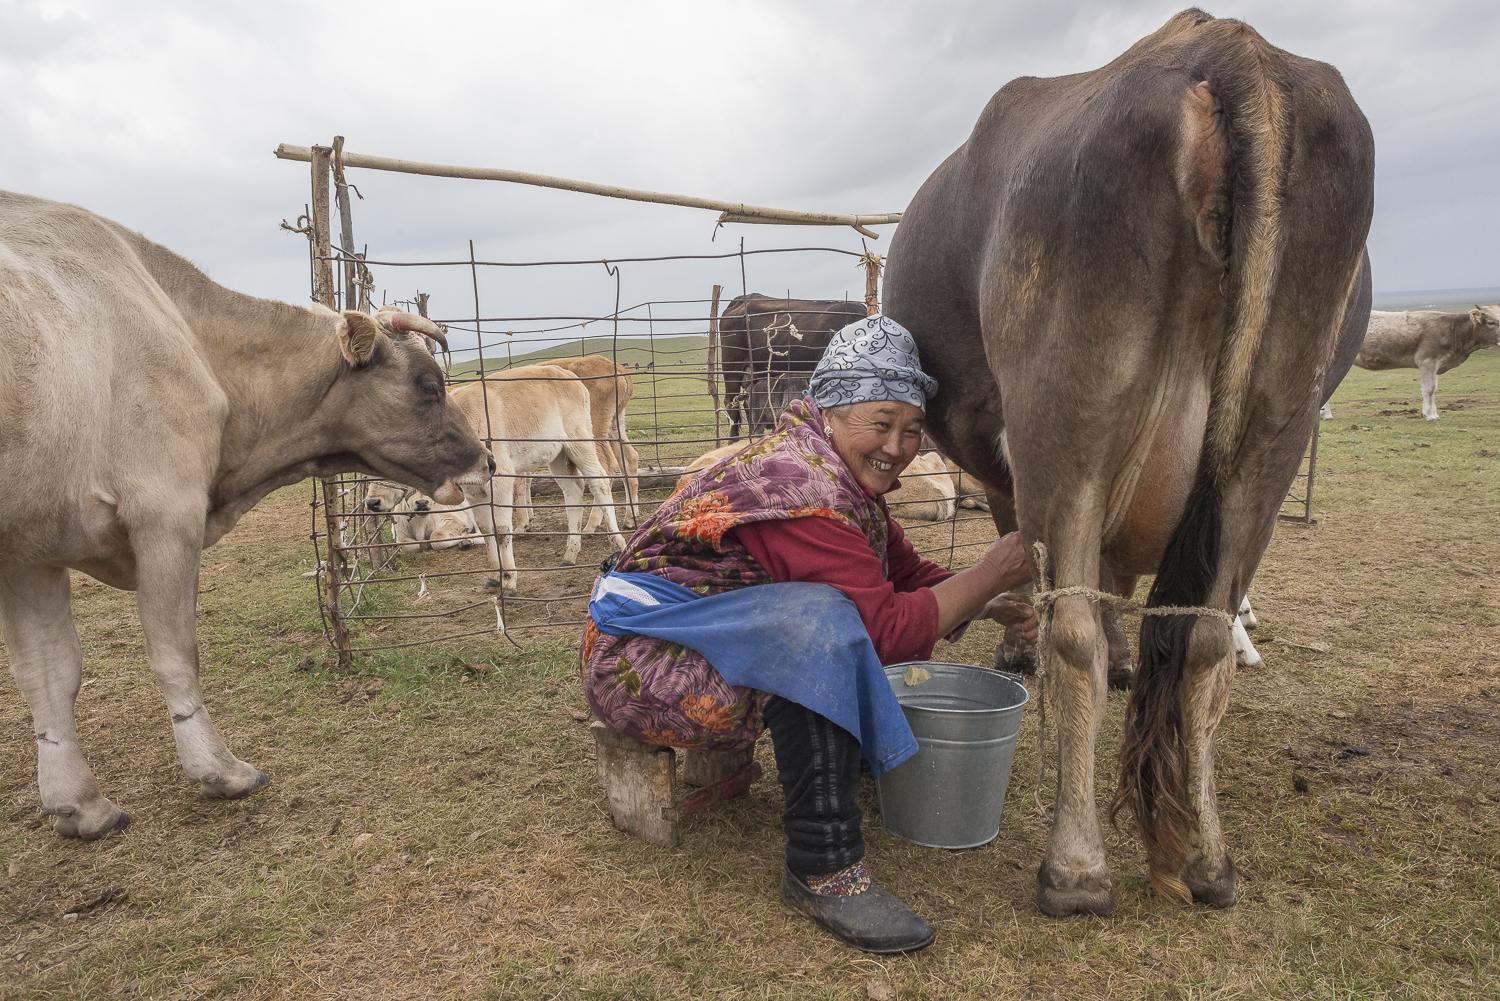 woman-milking-jo-kearney-photography-video-kyrgyzstan-nomads-milking-donkeys-photos-for-sale.jpg